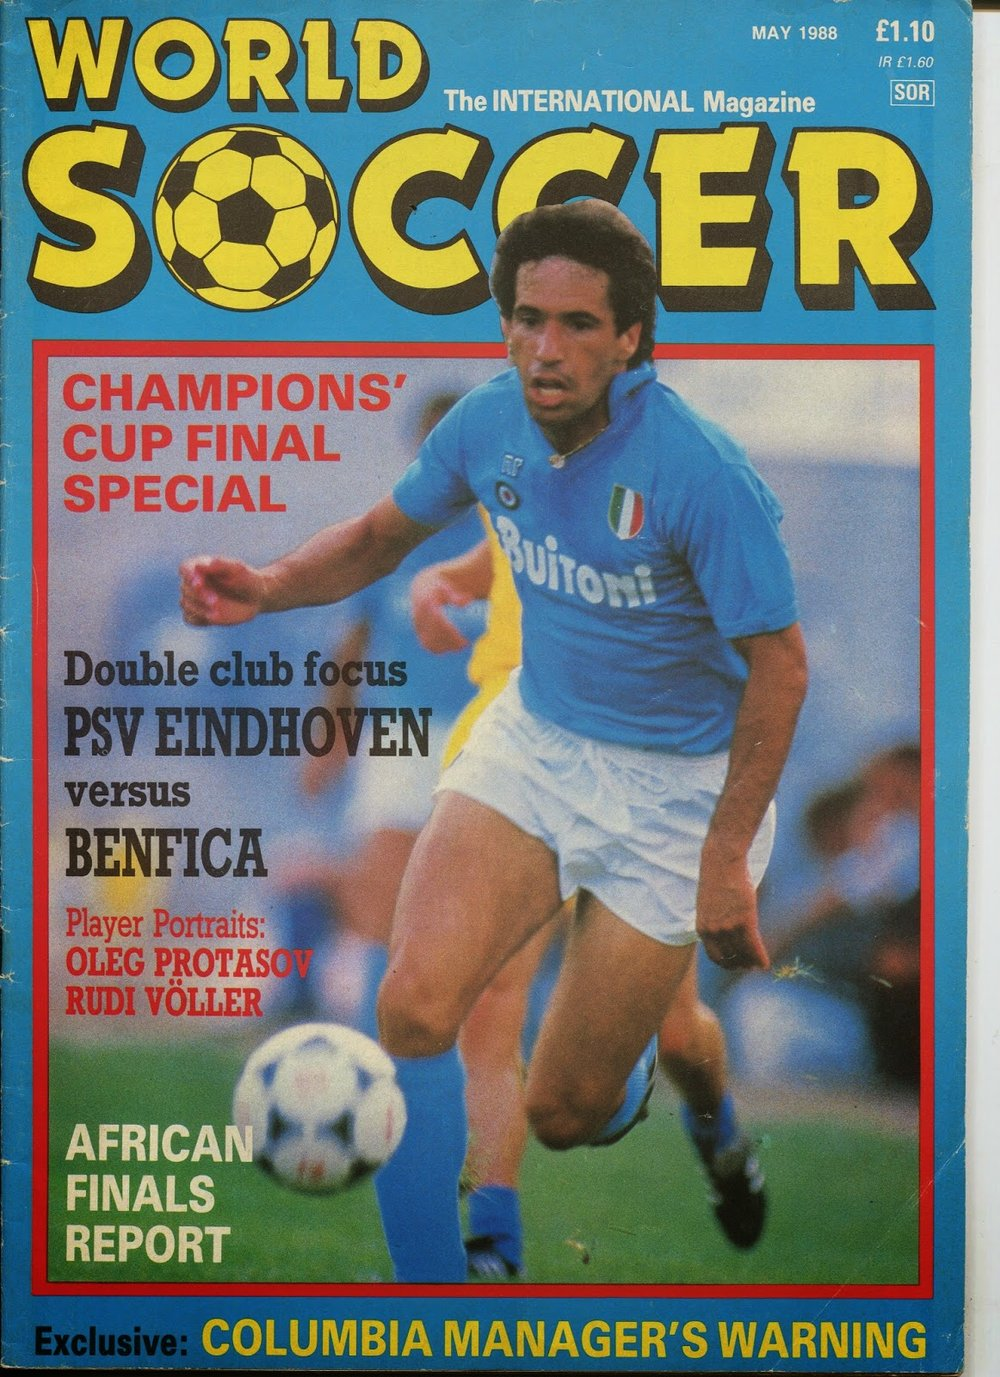 World Soccer, May 1988, page 1.jpg